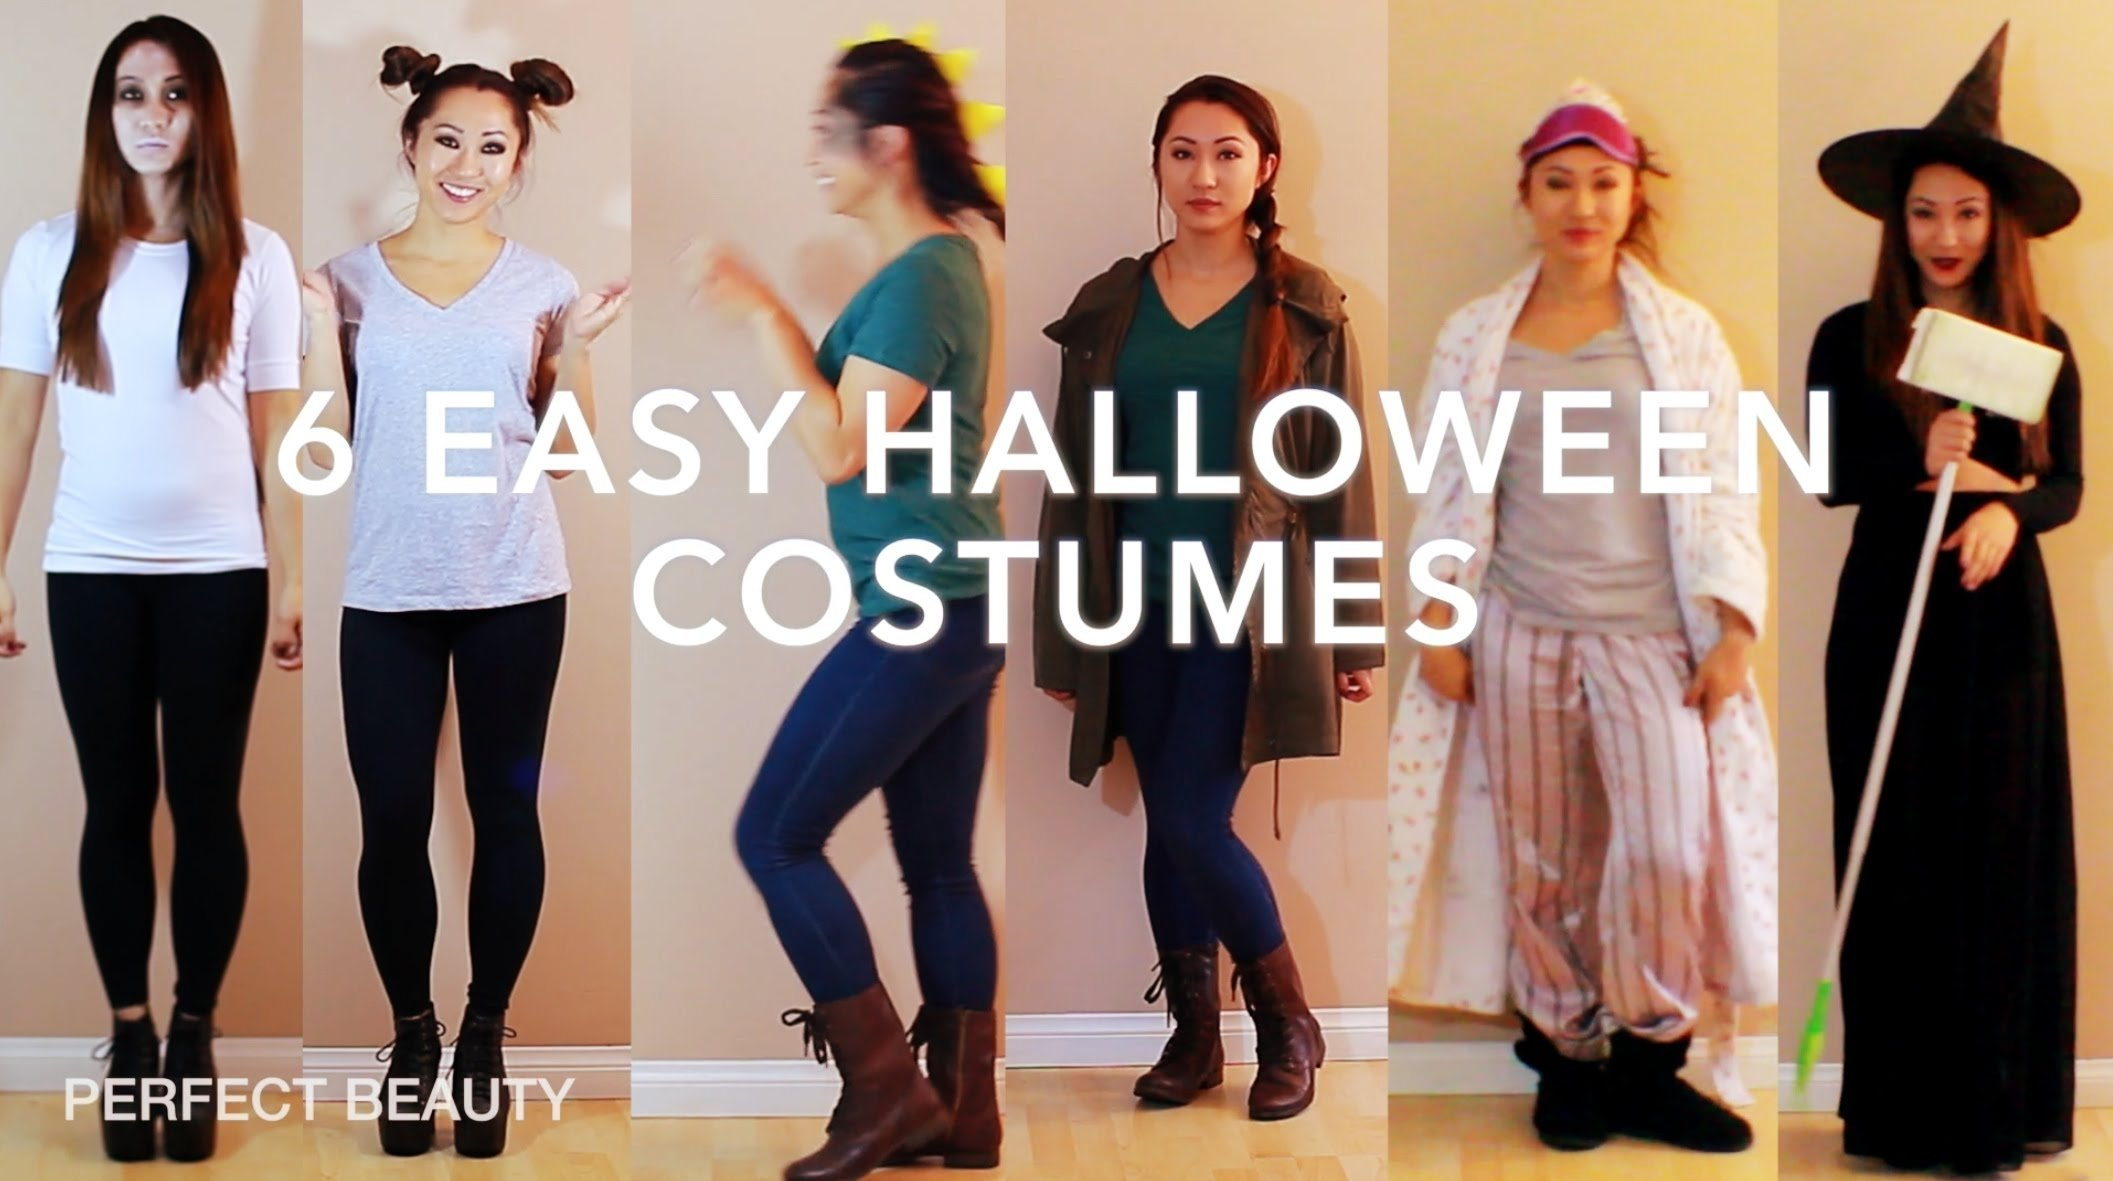 last minute! diy halloween costume ideas! perfect beauty - youtube